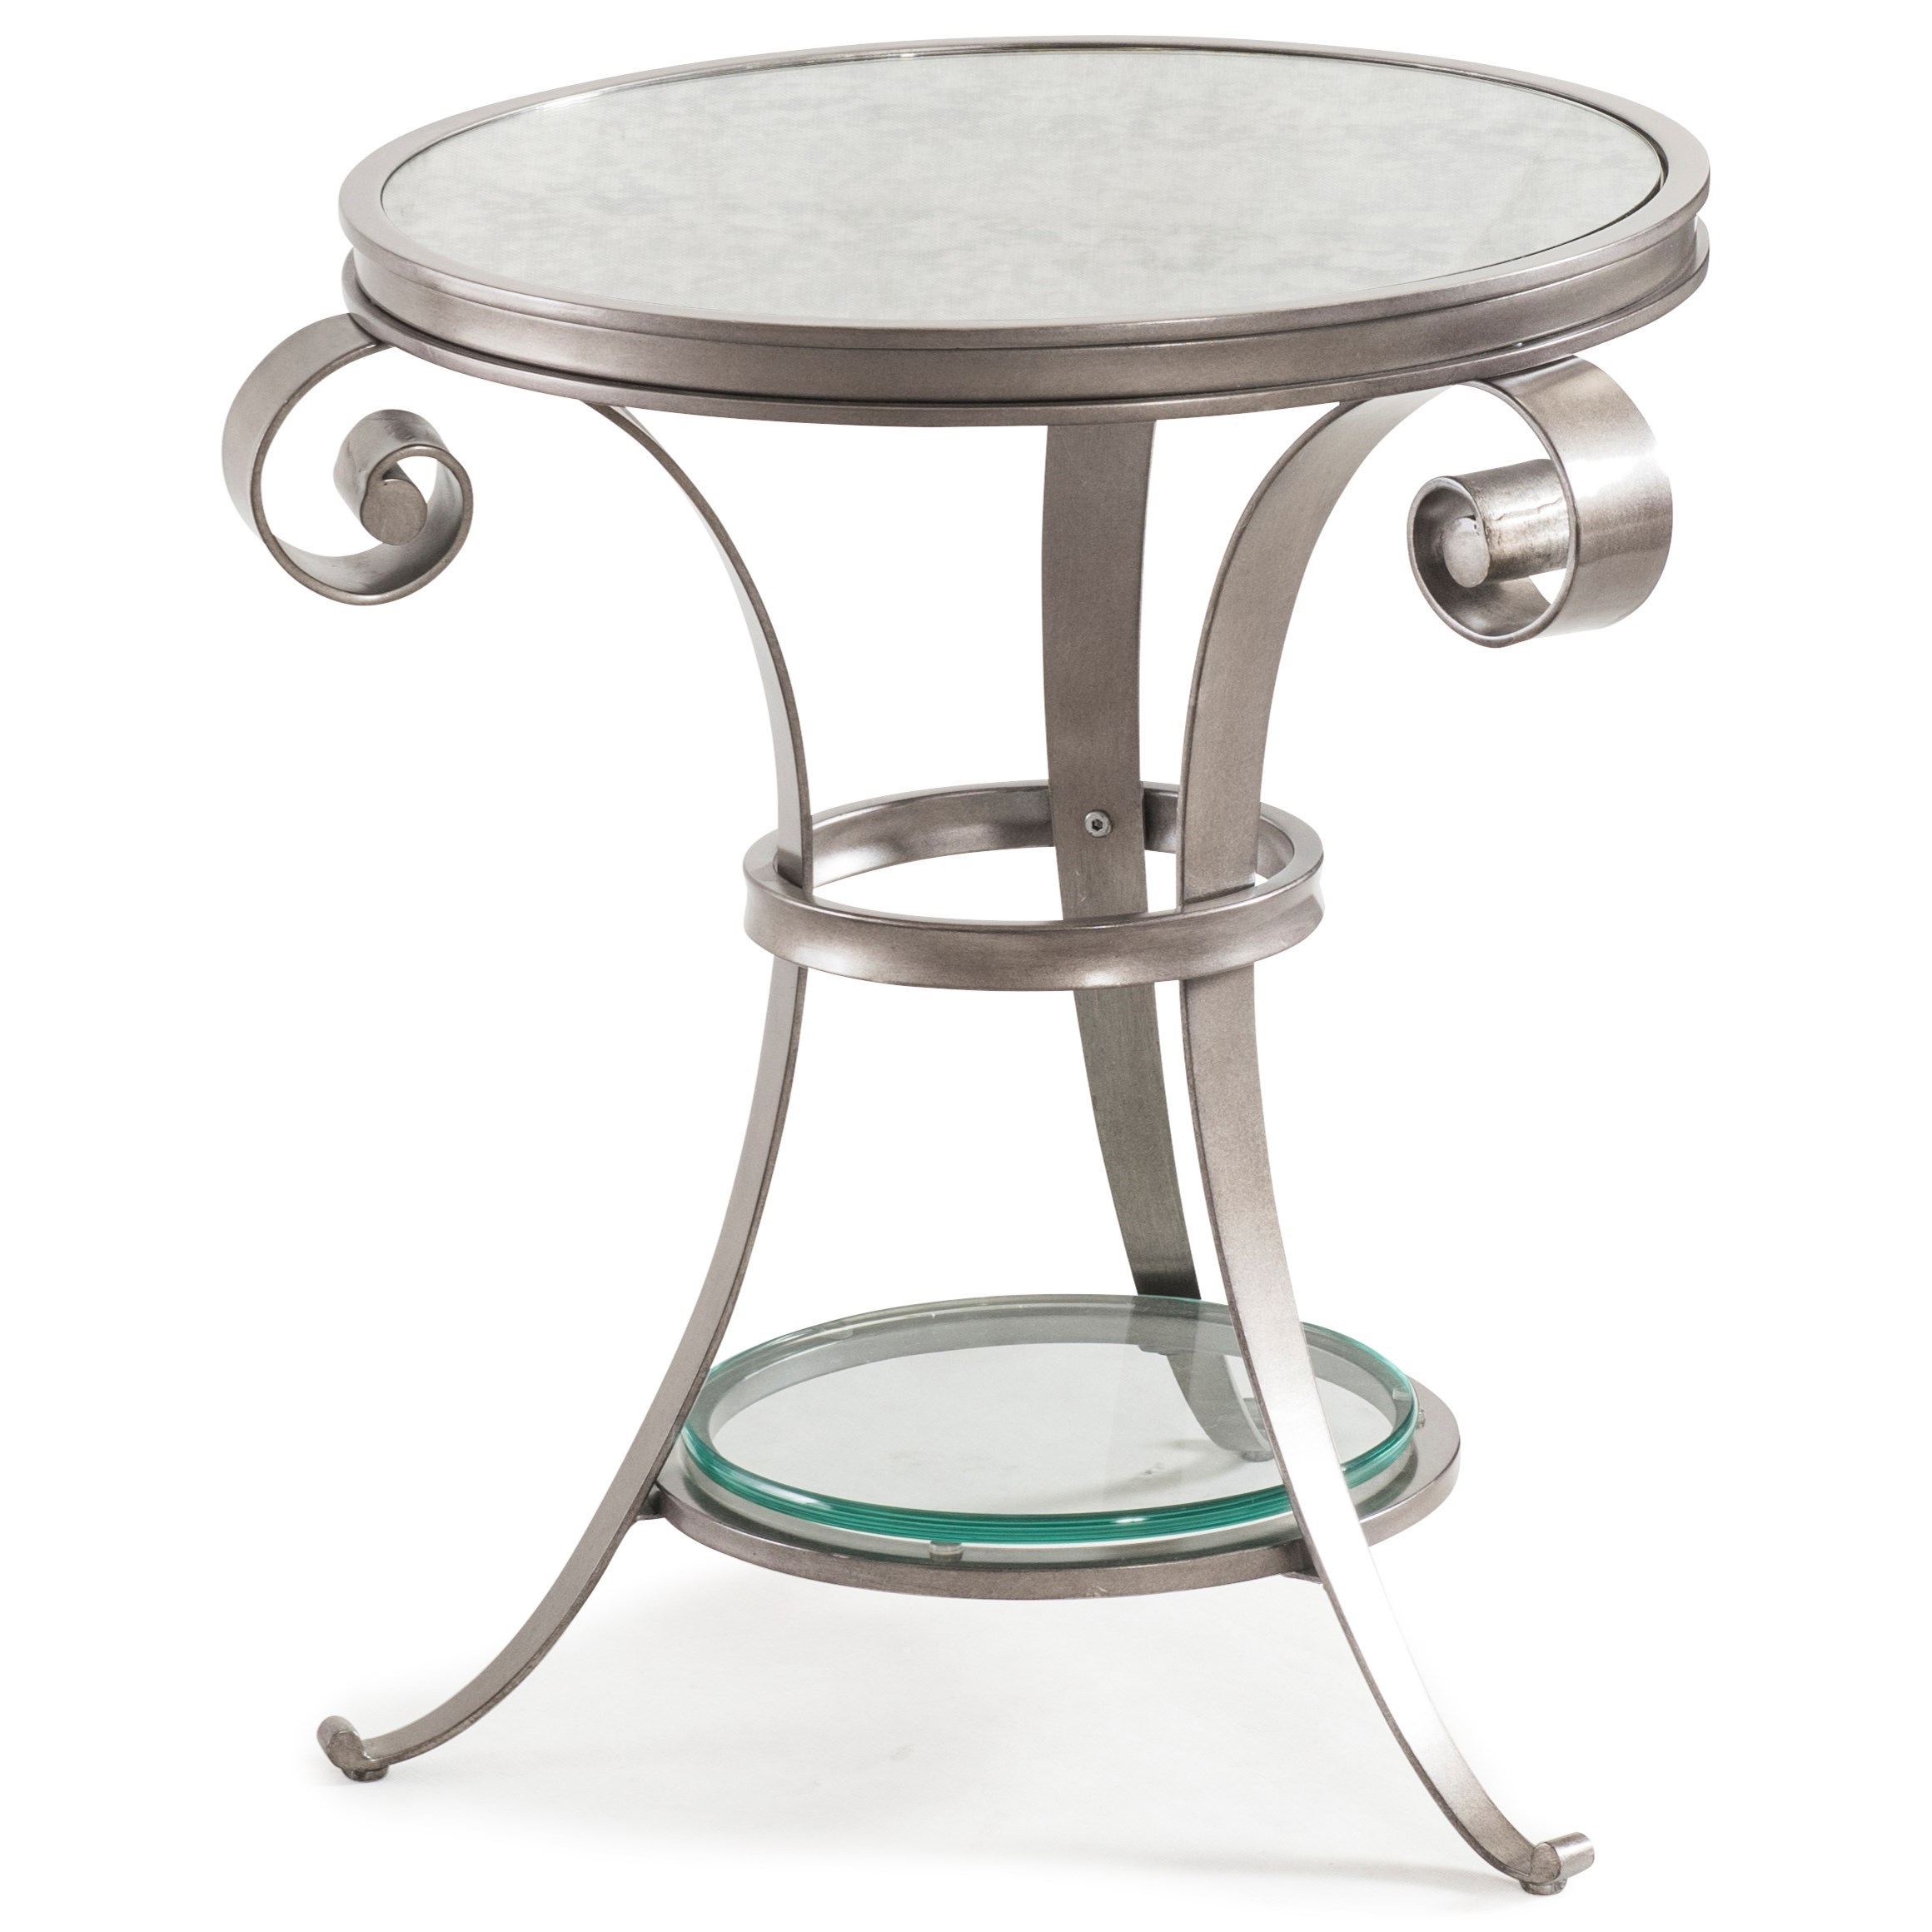 Trisha Yearwood Home Collectionklaussner Jasper County 791 810 Throughout Well Liked Jasper Lift Top Cocktail Tables (View 17 of 20)